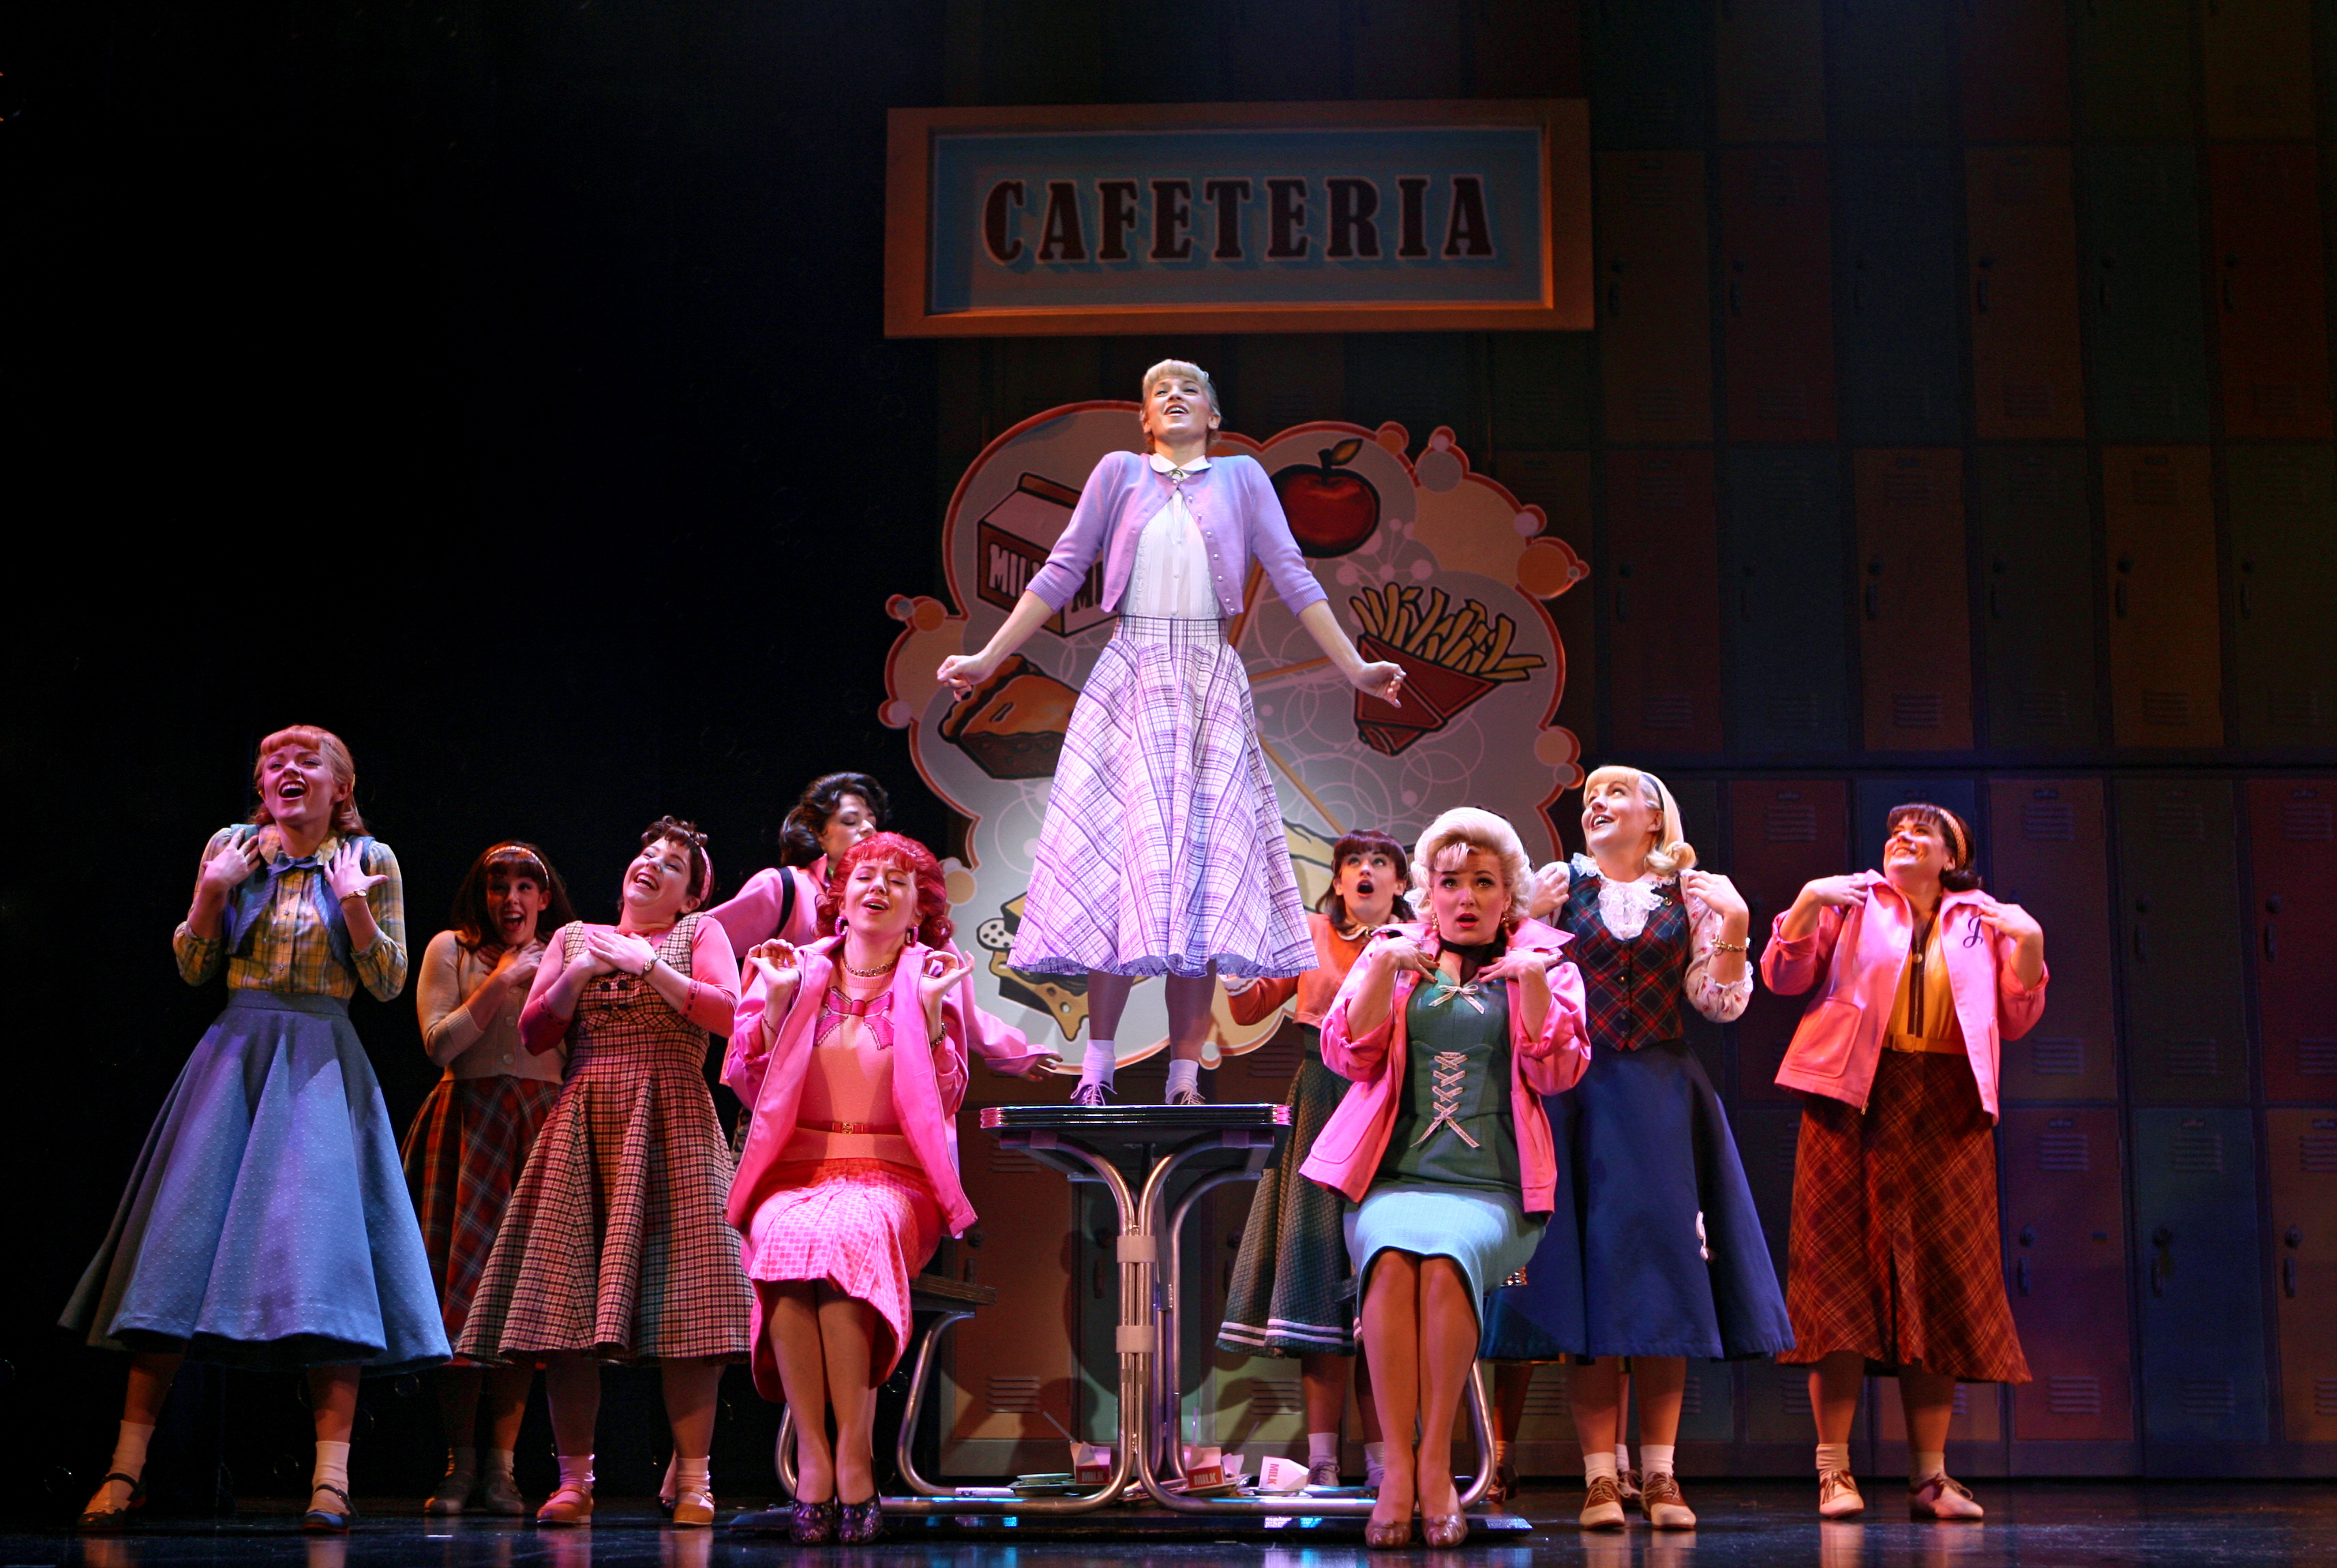 review of guys and dolls play ©2018 musical theatre west, 4350 e 7th street, long beach, ca 90804-5546 musical theatre west is a california 501(c)3 non-profit corporation, federal tax id 95-6100108 musical theatre west is the proud resident musical theater company at the carpenter performing arts center in long beach.